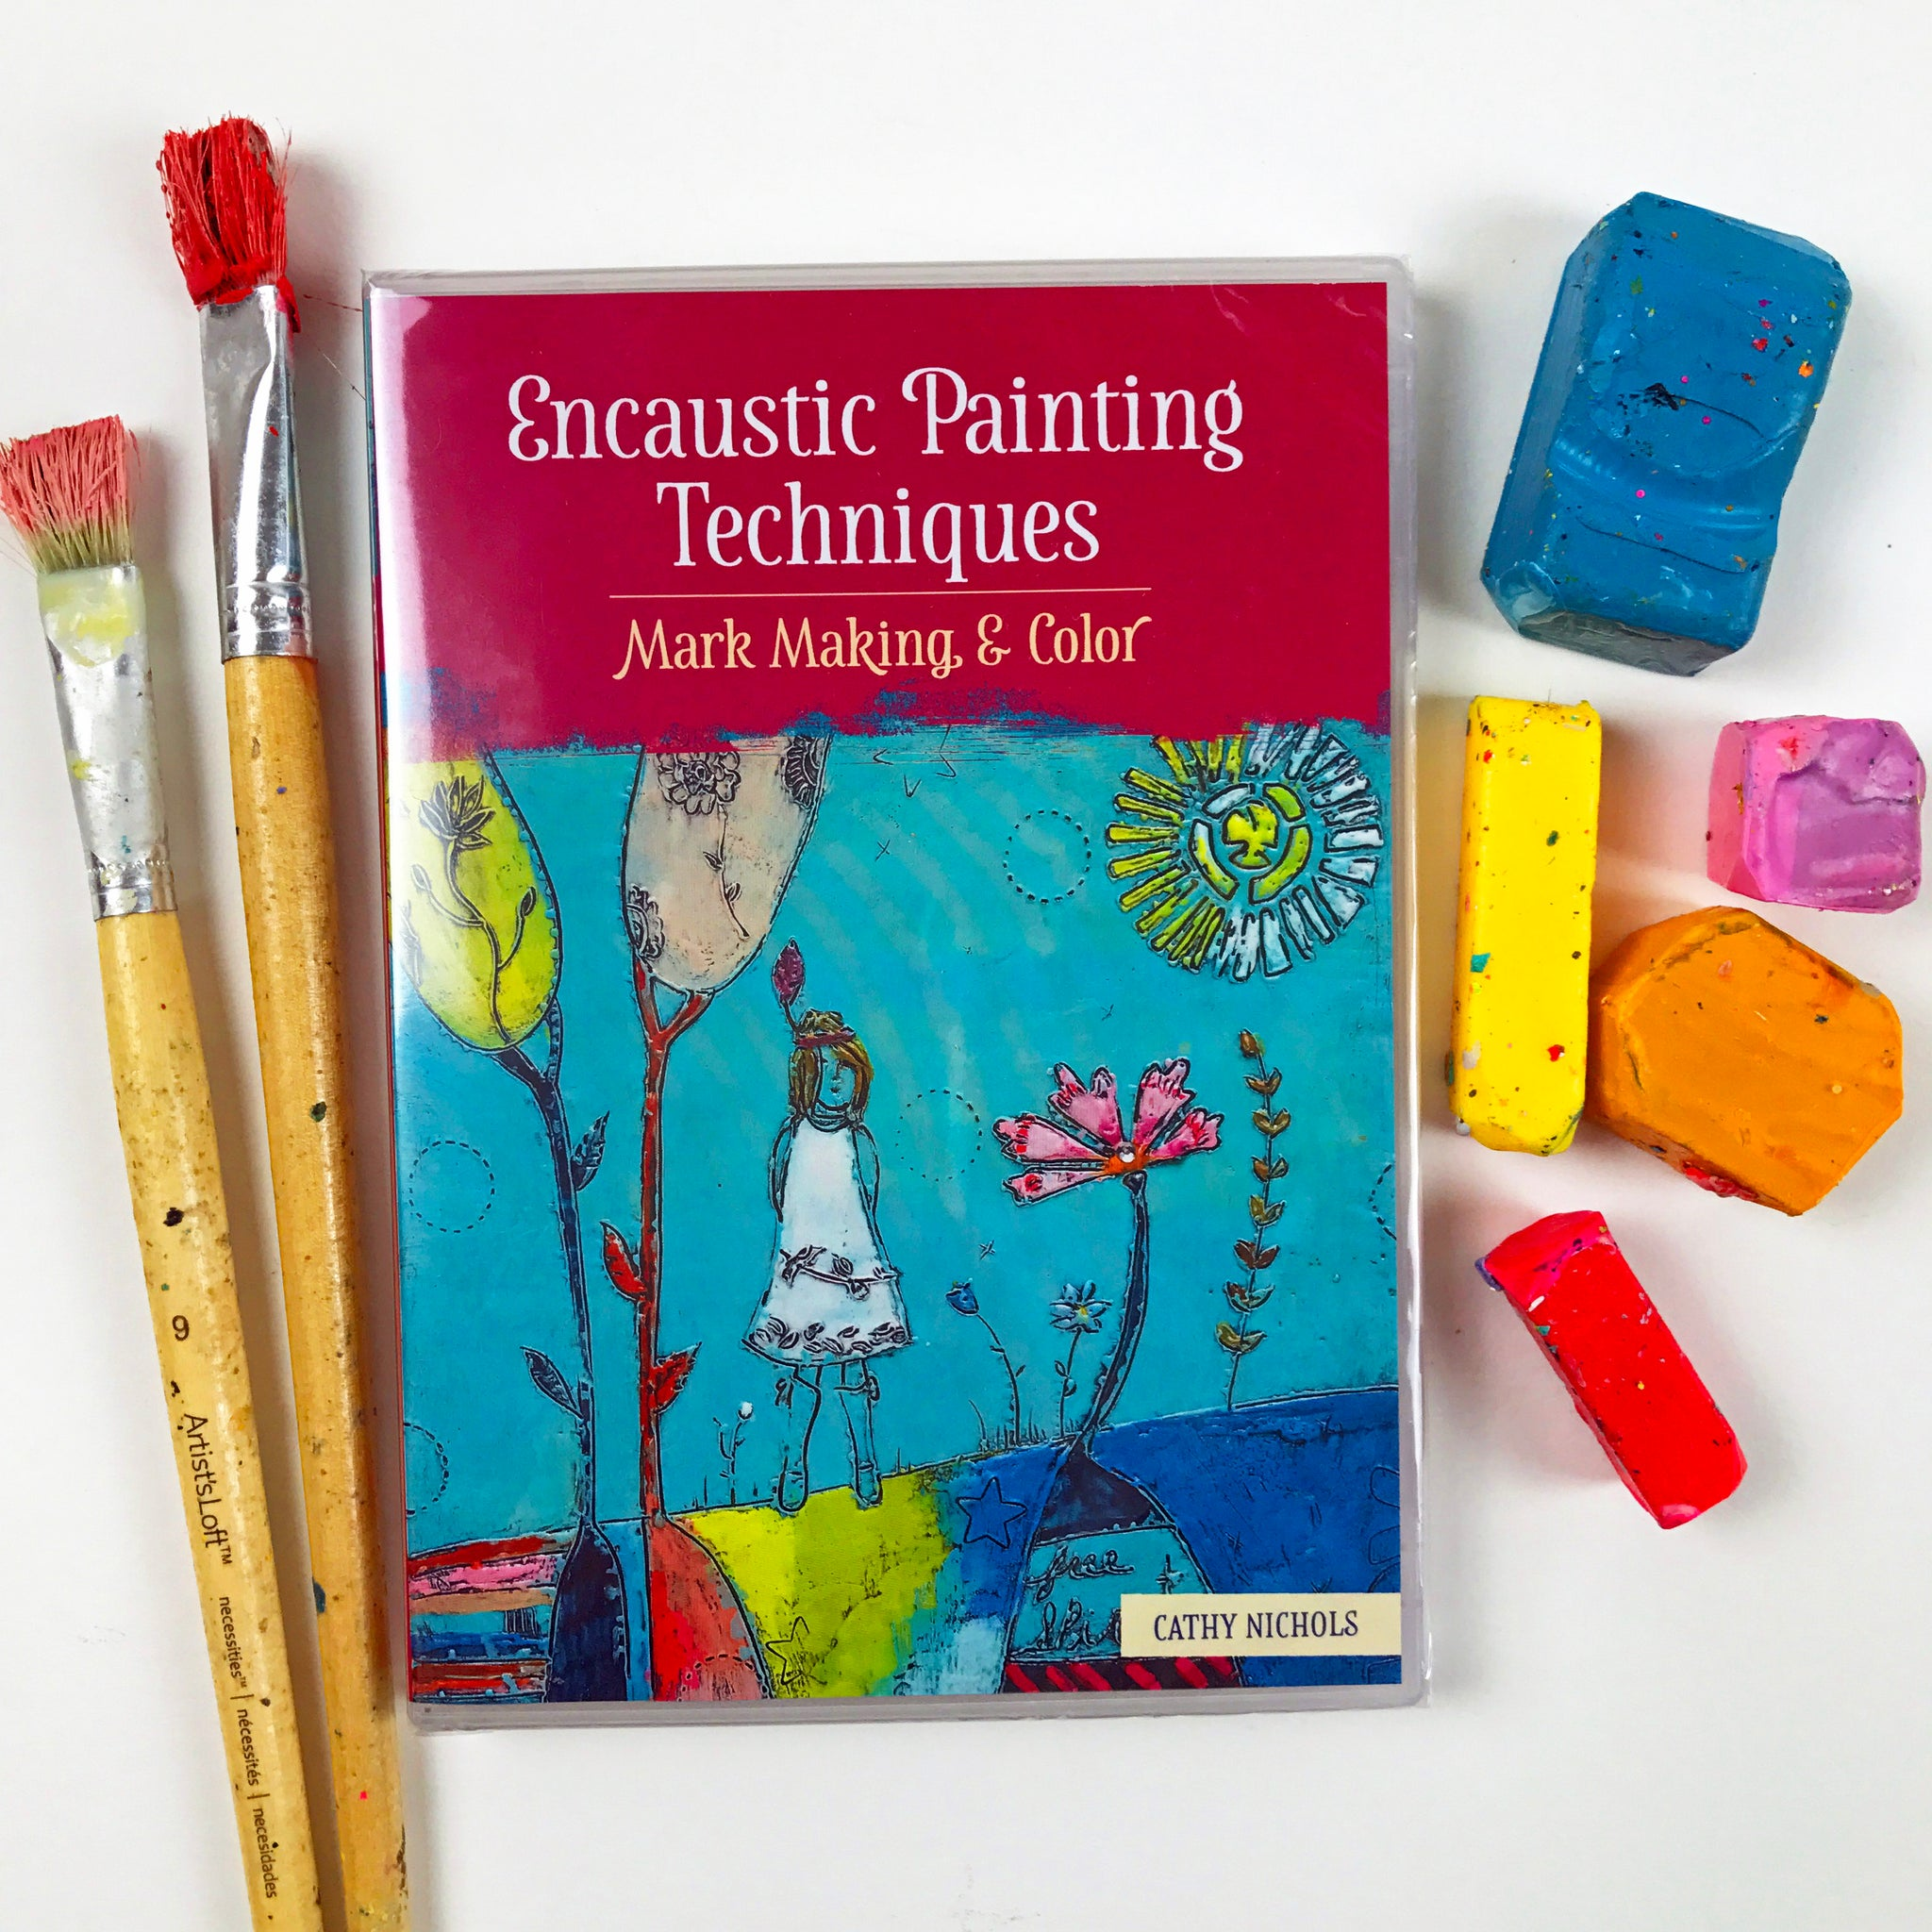 Encaustic Painting Techniques DVD